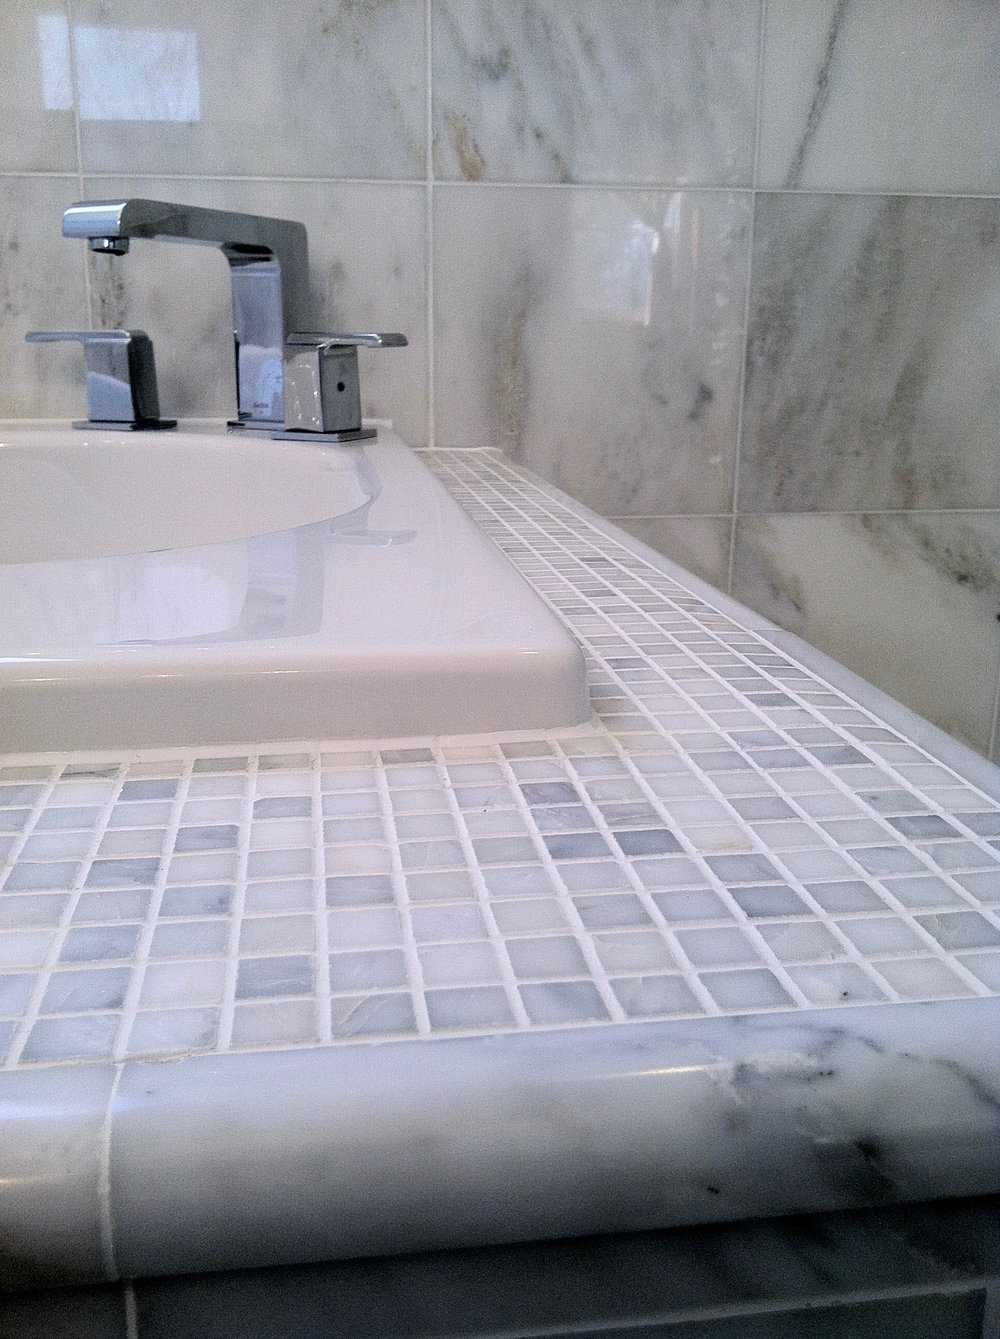 A modern sink fixture, beside marble wall tiles